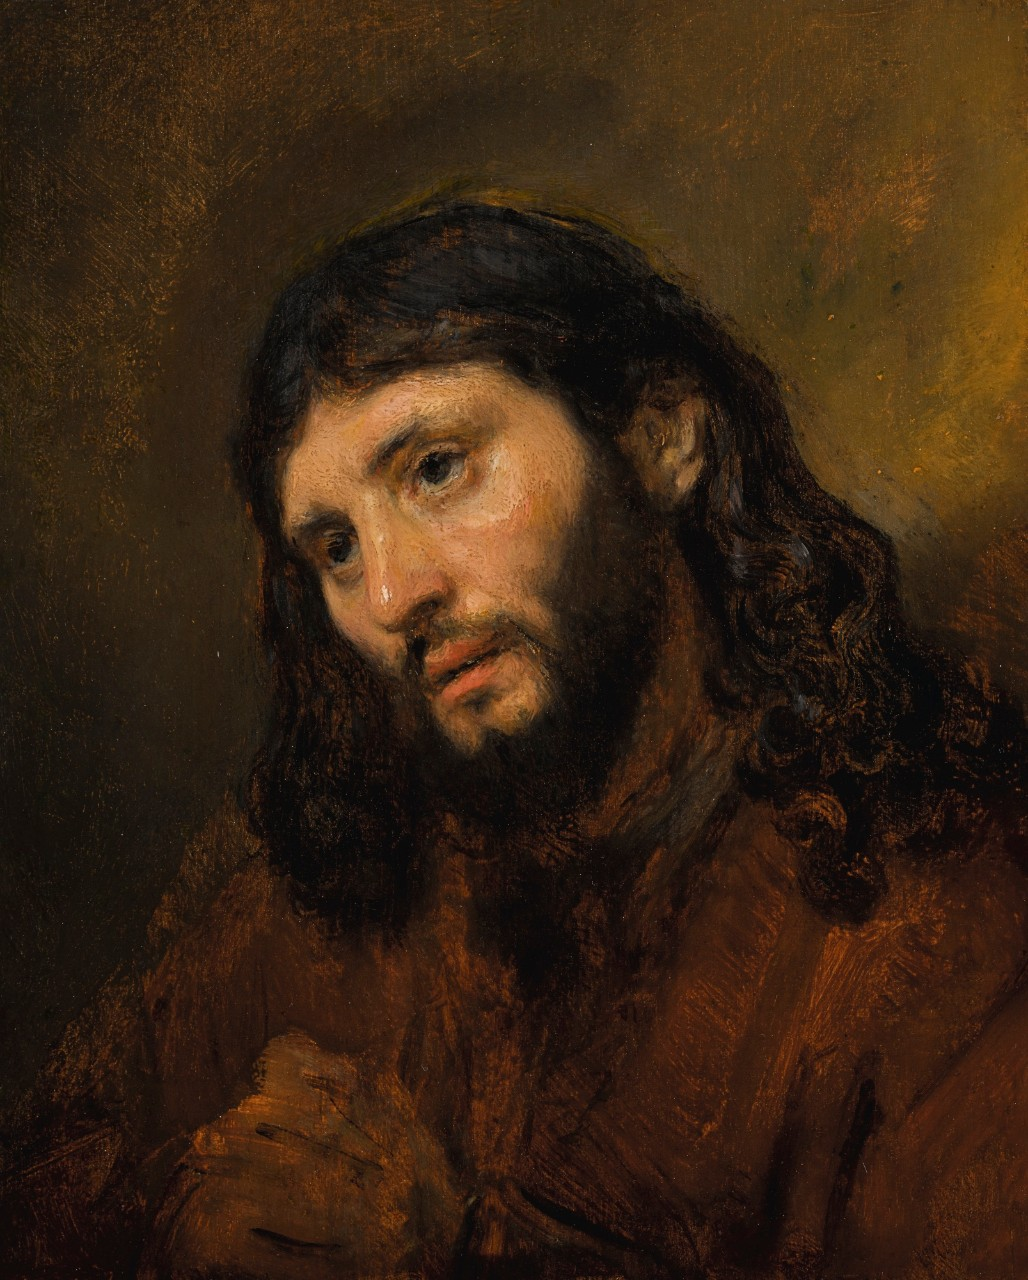 Study of the Head and Clasped Hands of a Young Man as Christ in Prayer by Rembrandt